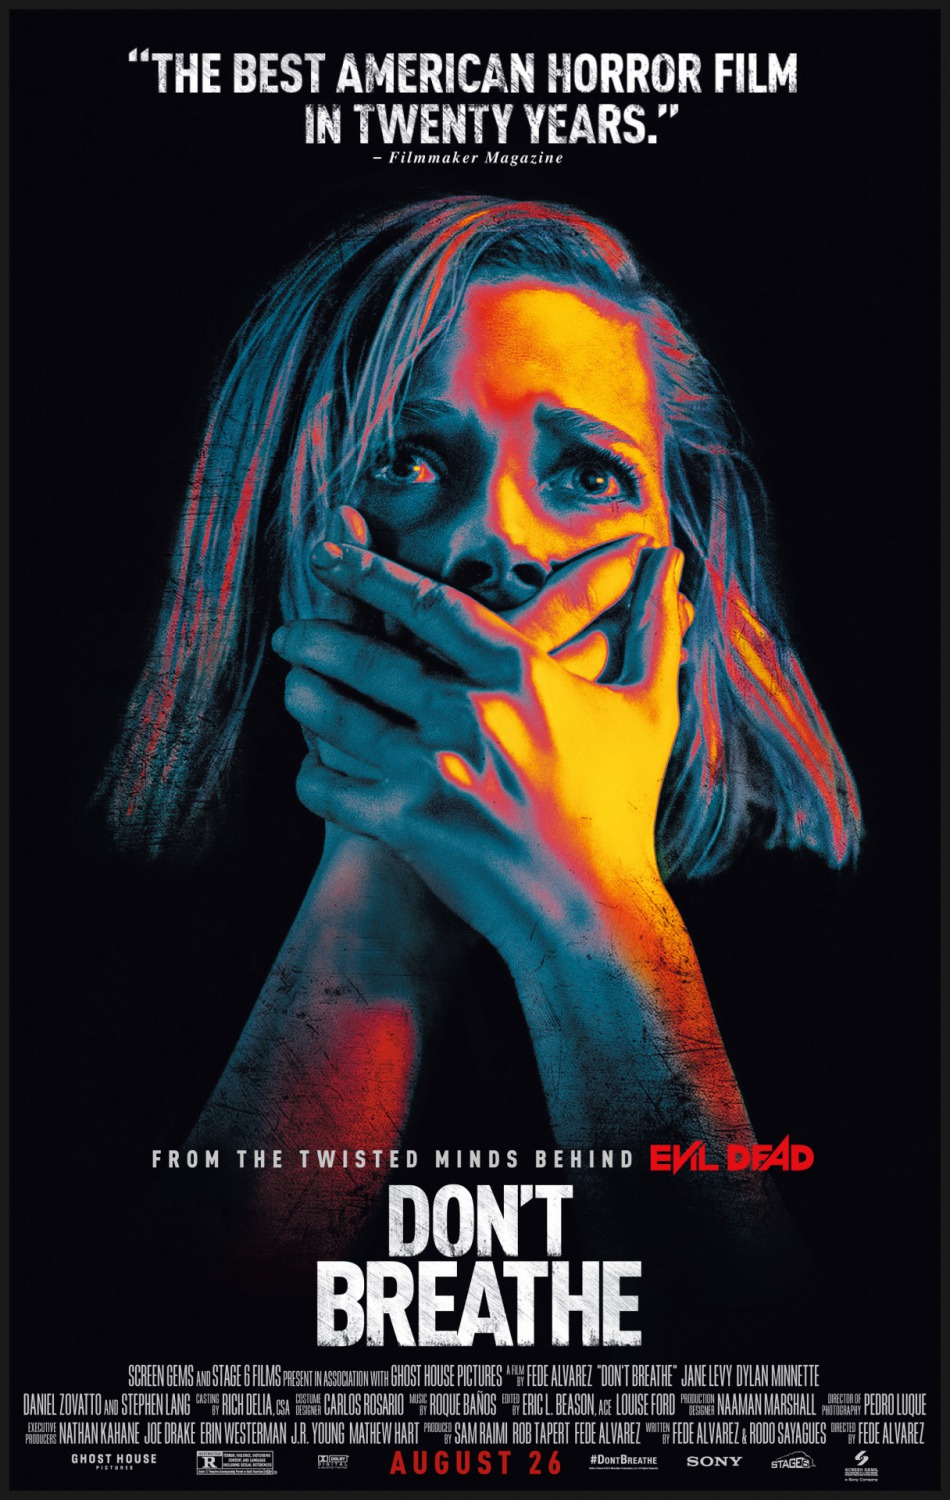 Don't Breathe film review: night terrors